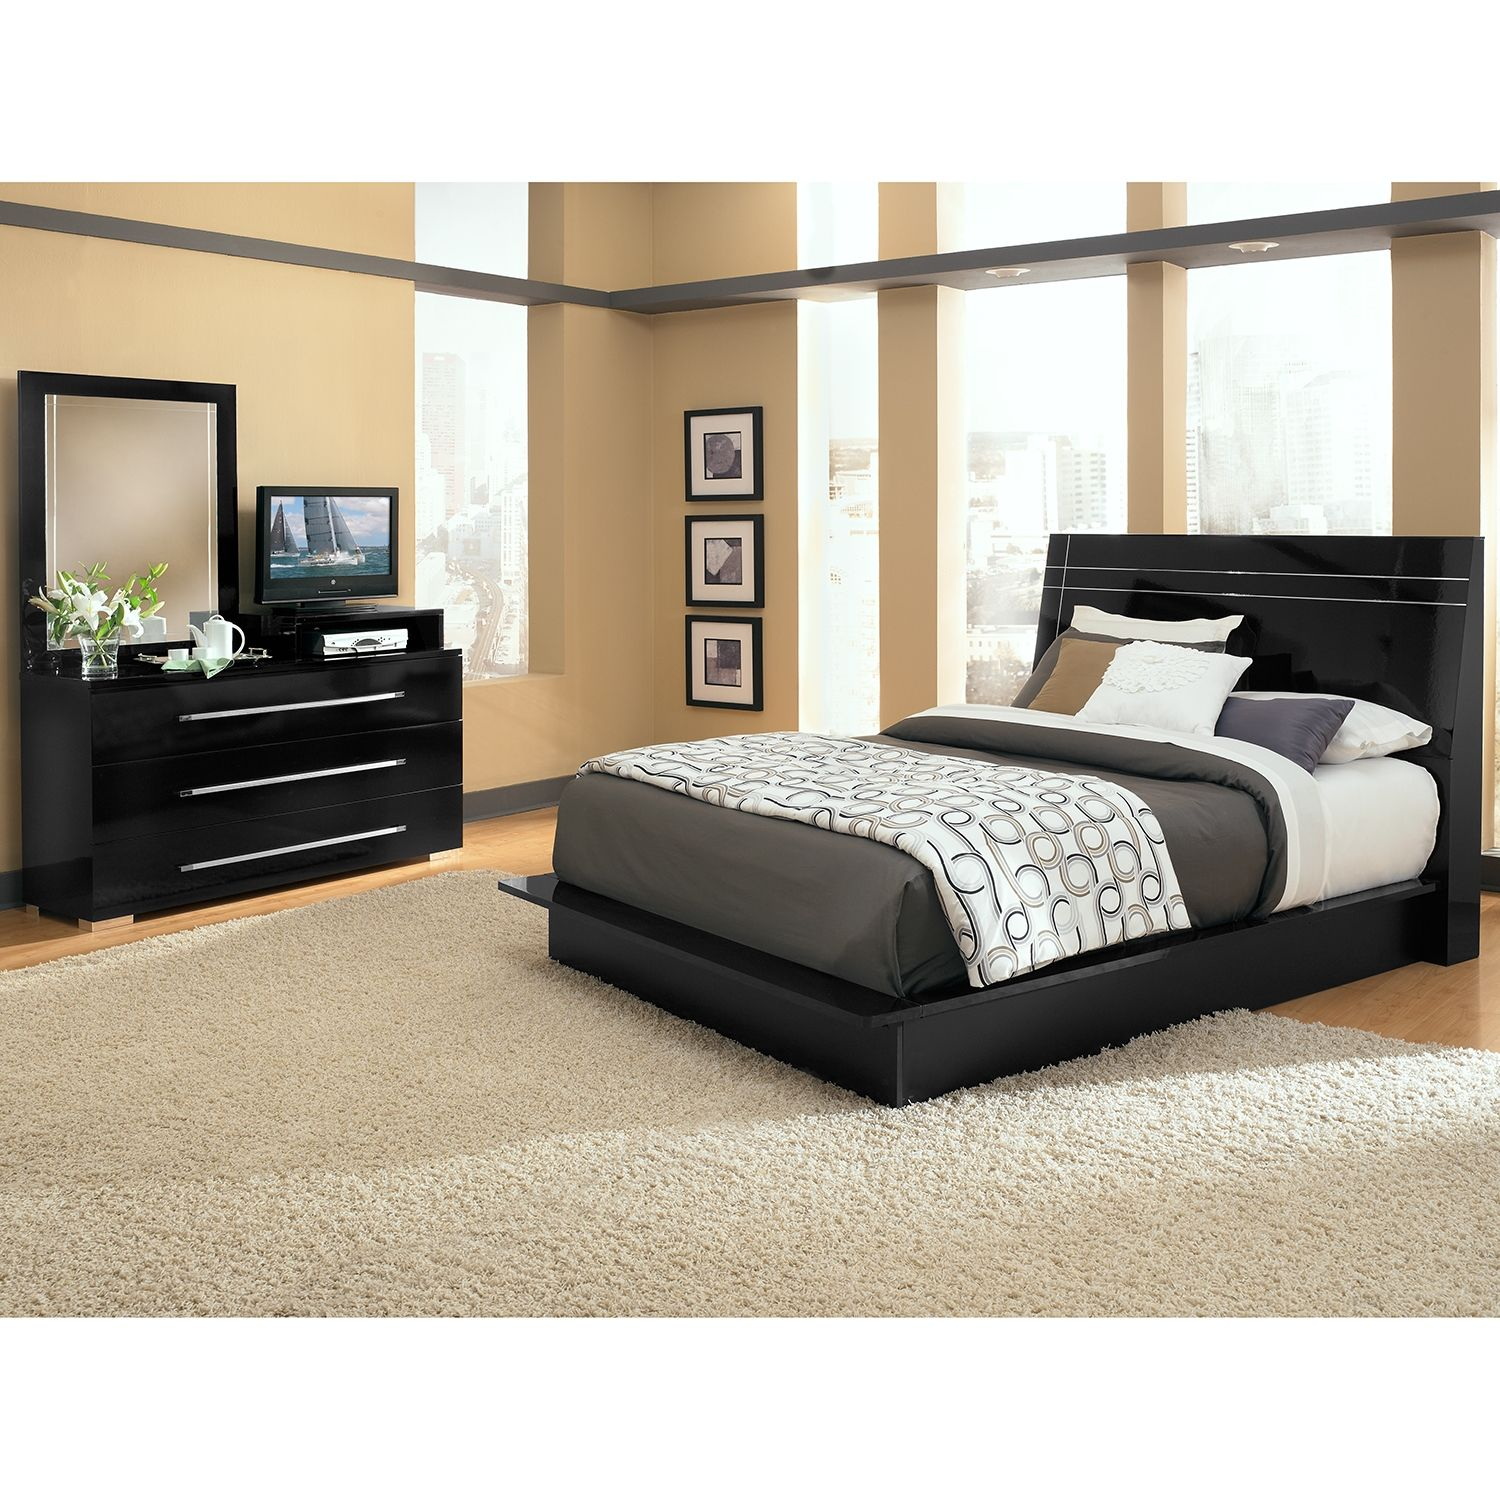 Dimora Black Ii 5 Pcqueen Bedroom  Value City Furniture New King Size Bedroom Sets Clearance Inspiration